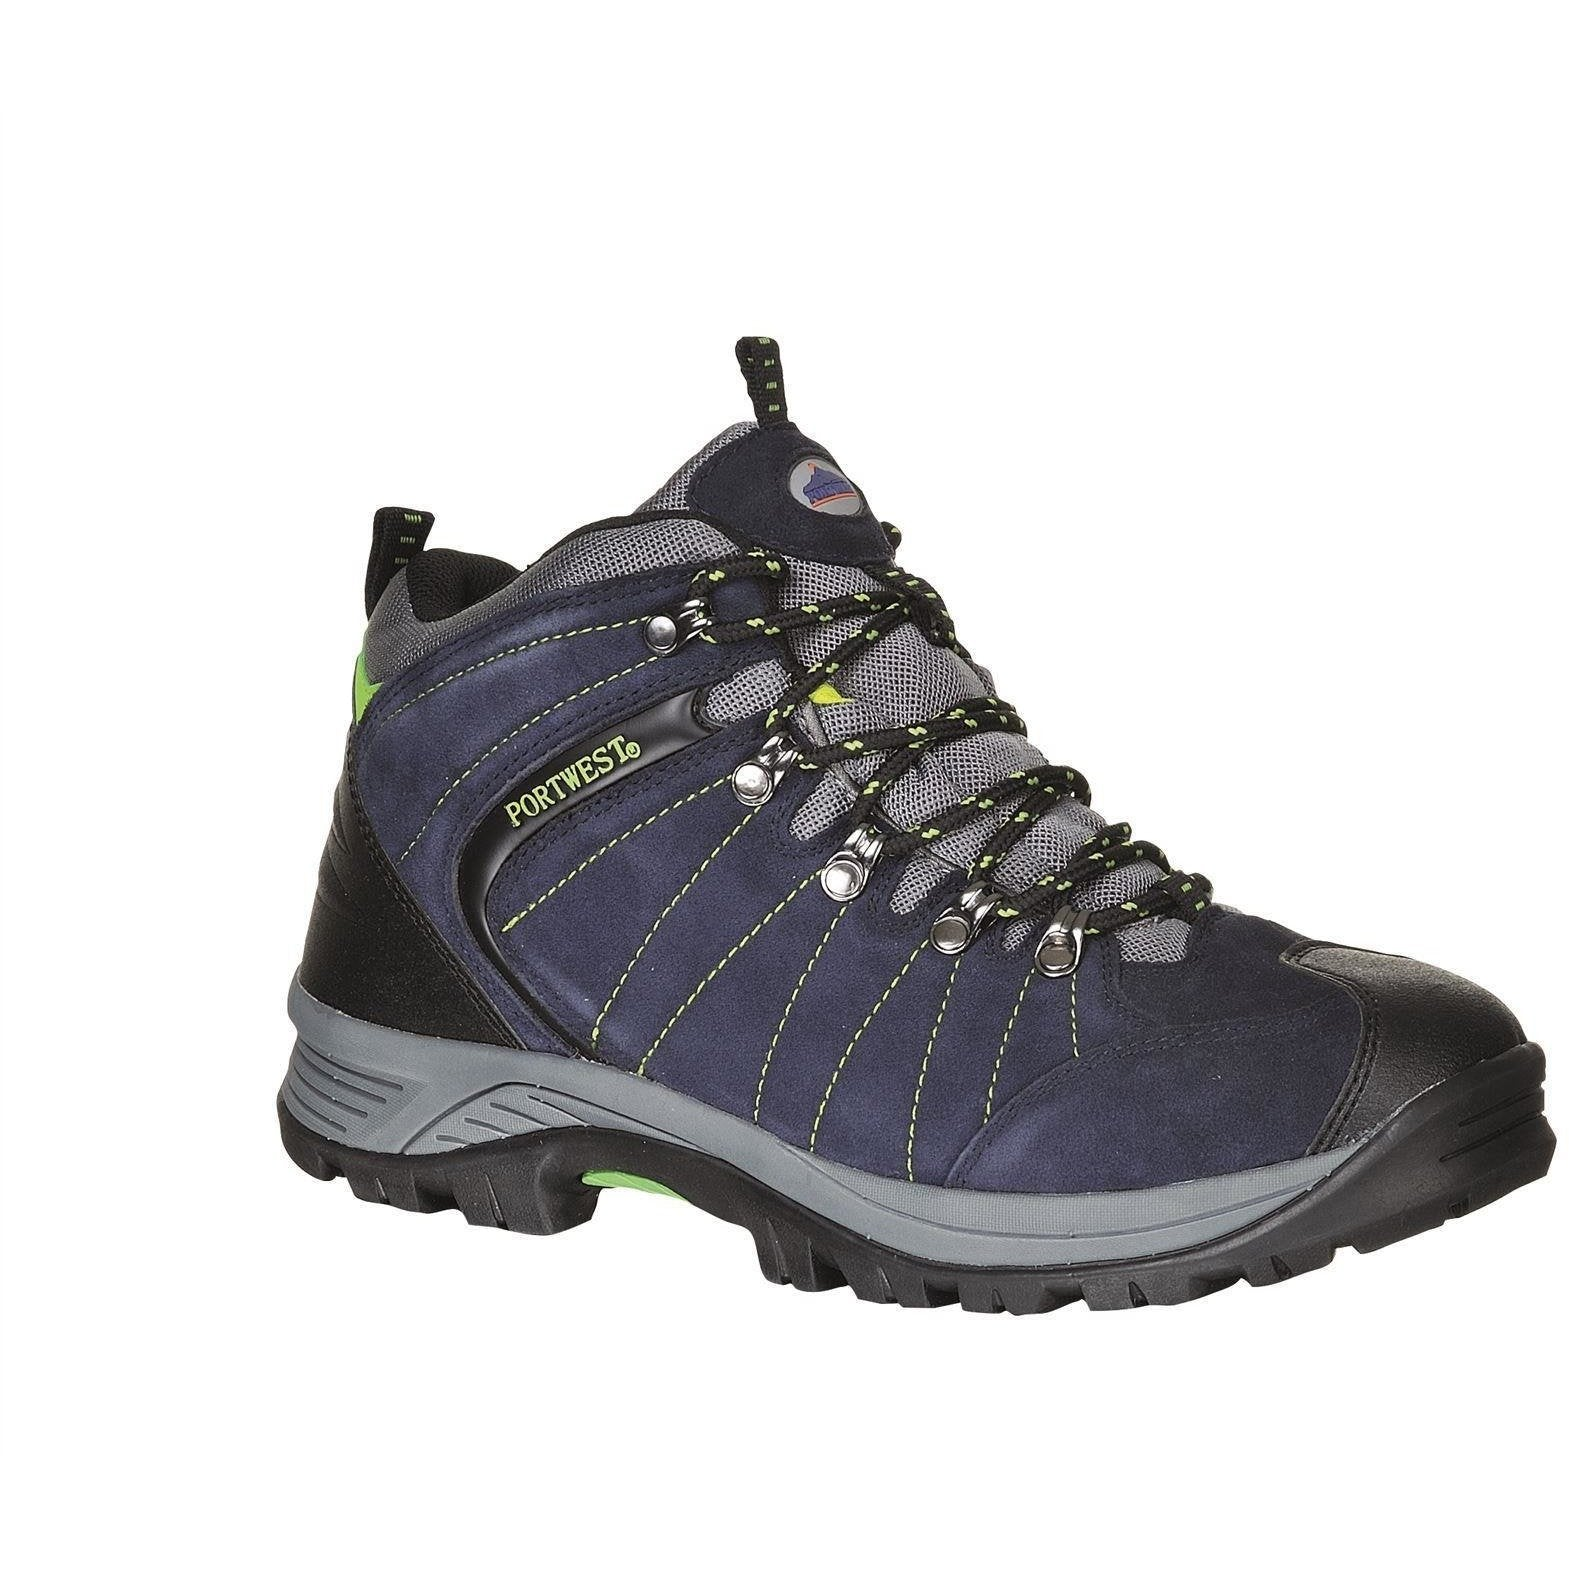 Portwest Limes Occupational Hiker Boot OB FW40 - reid outdoors